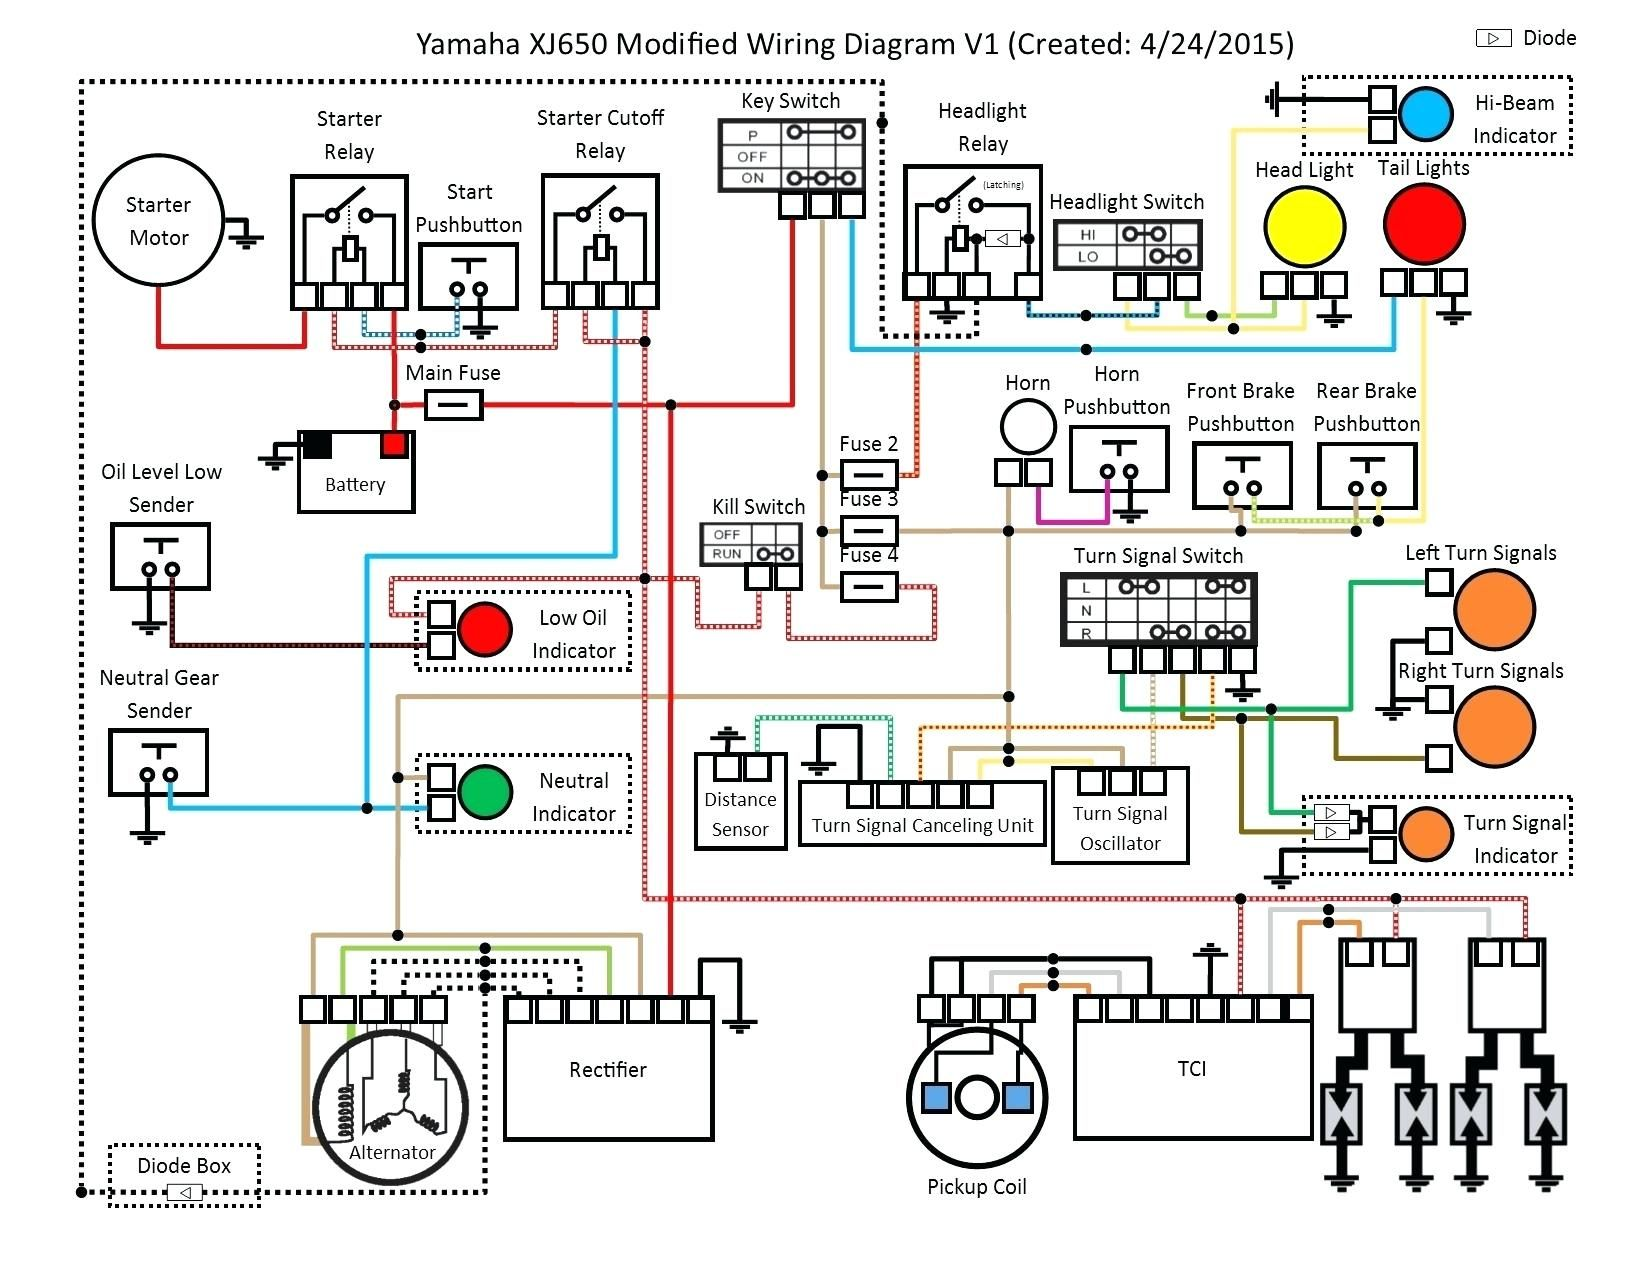 Wiring Diagram Of Motorcycle Honda - Wiring Diagram Categories on